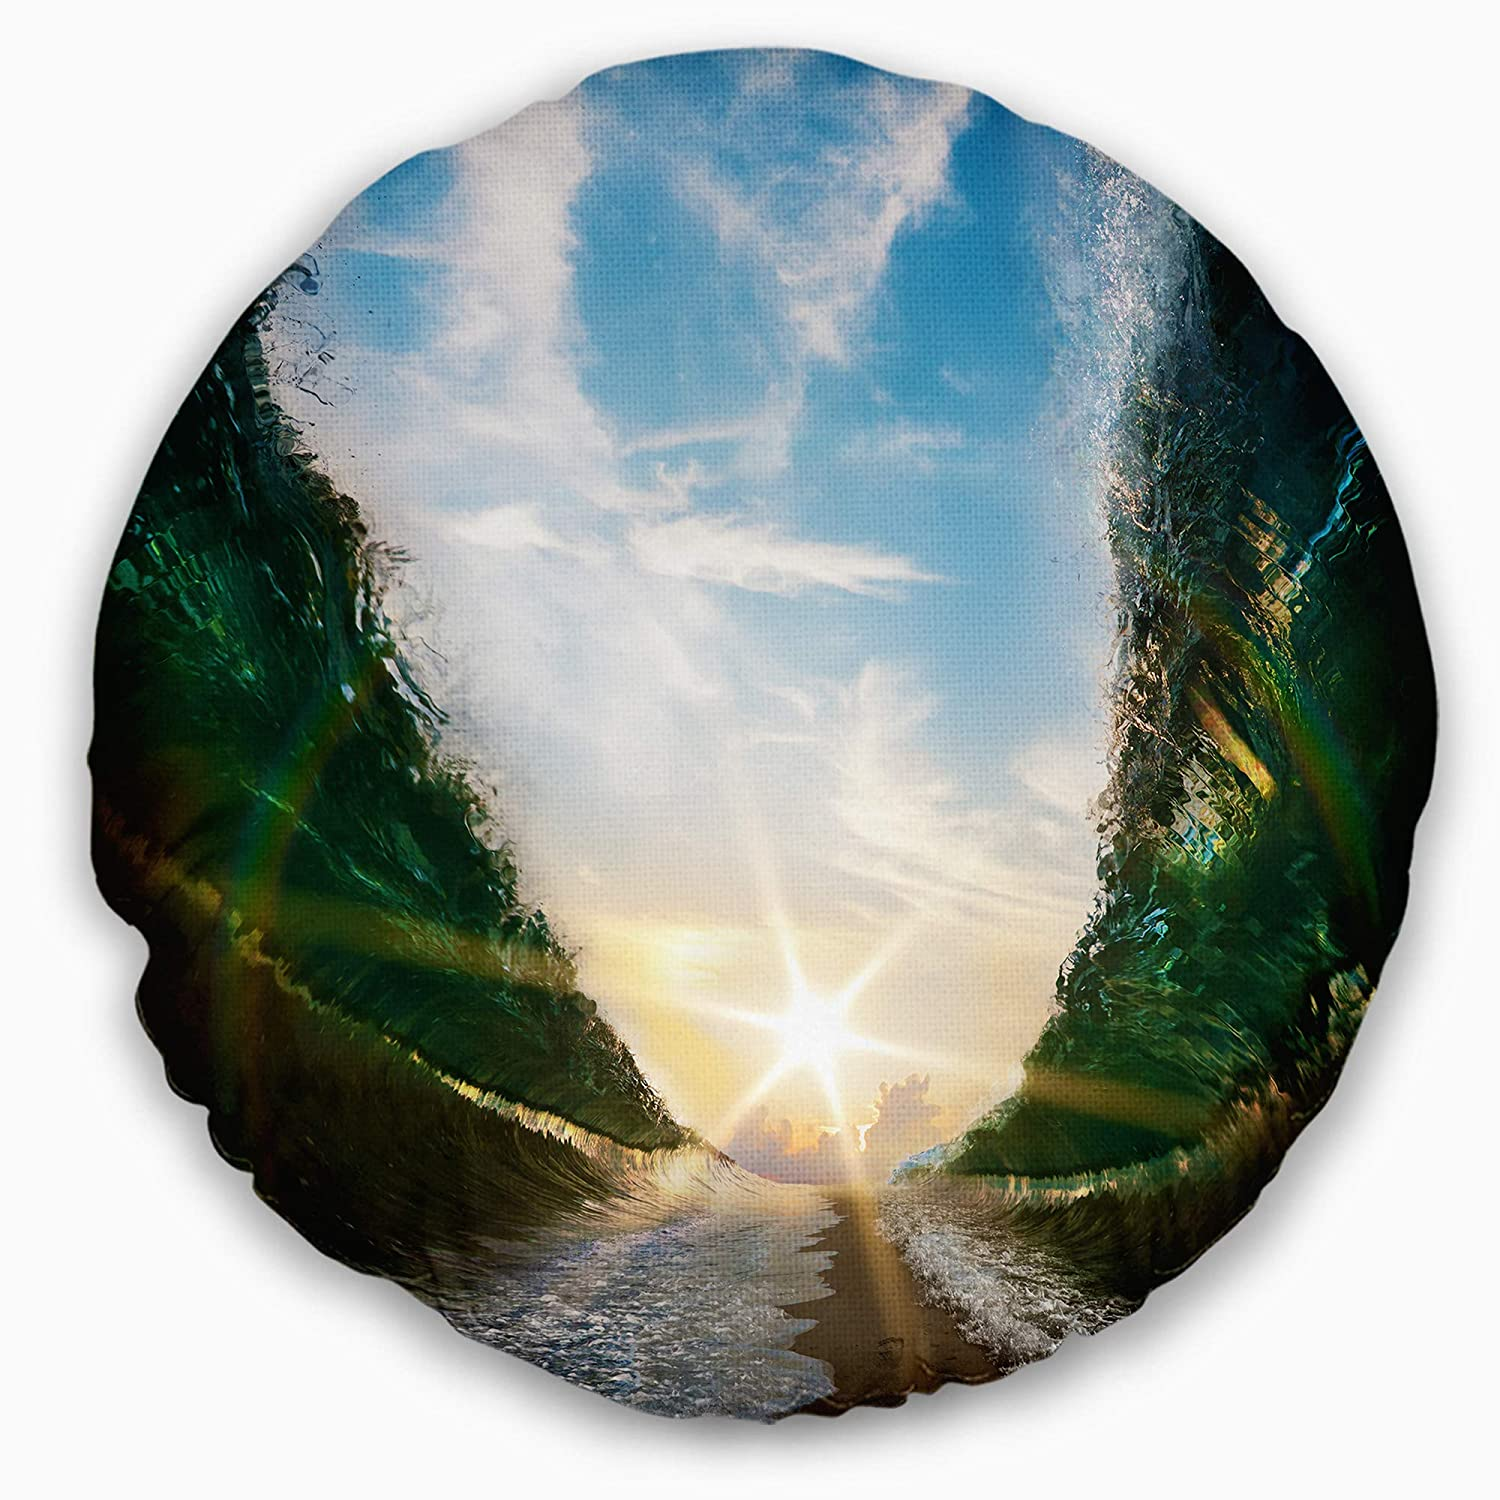 Designart CU10599-20-20-C Sandy Path to The Sun in Parted Sea Seascape Throw Cushion Pillow Cover for Living Room Pillow Insert 20 Round Sofa Cushion Cover Printed on Both Side